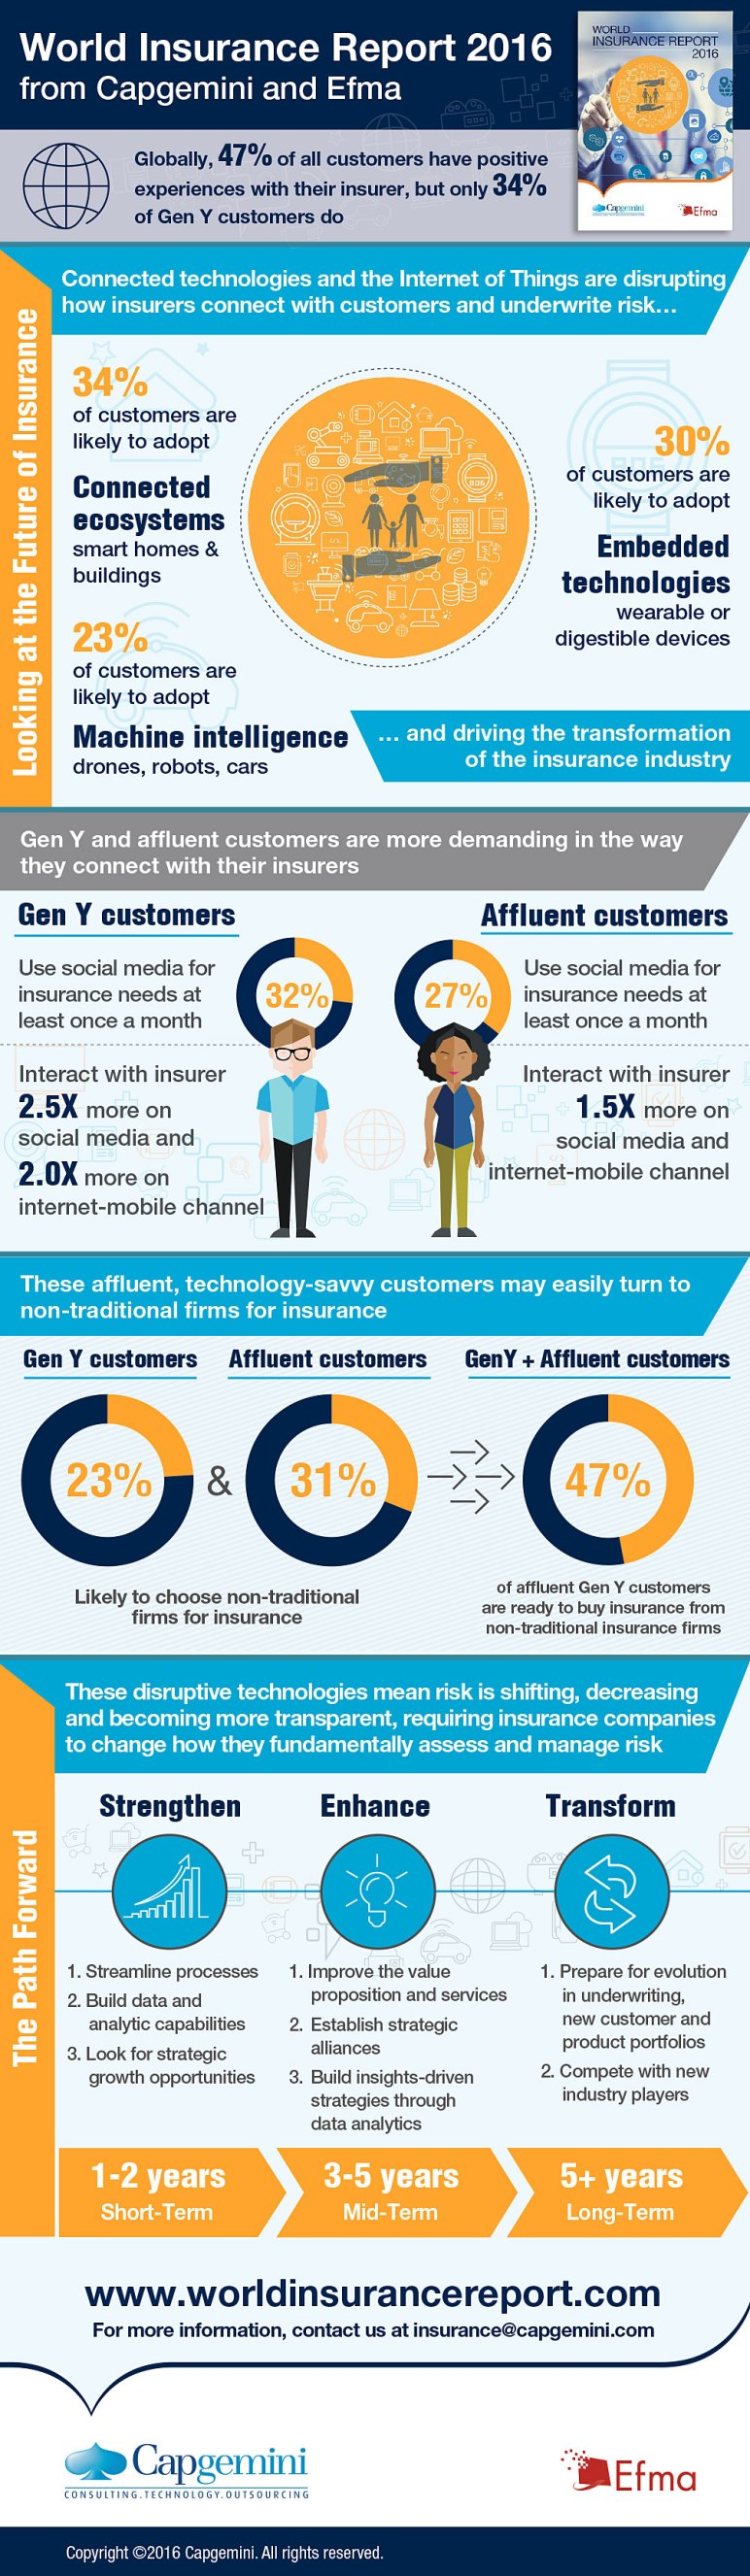 world insurance report 2016 infographic Capgemini Efma